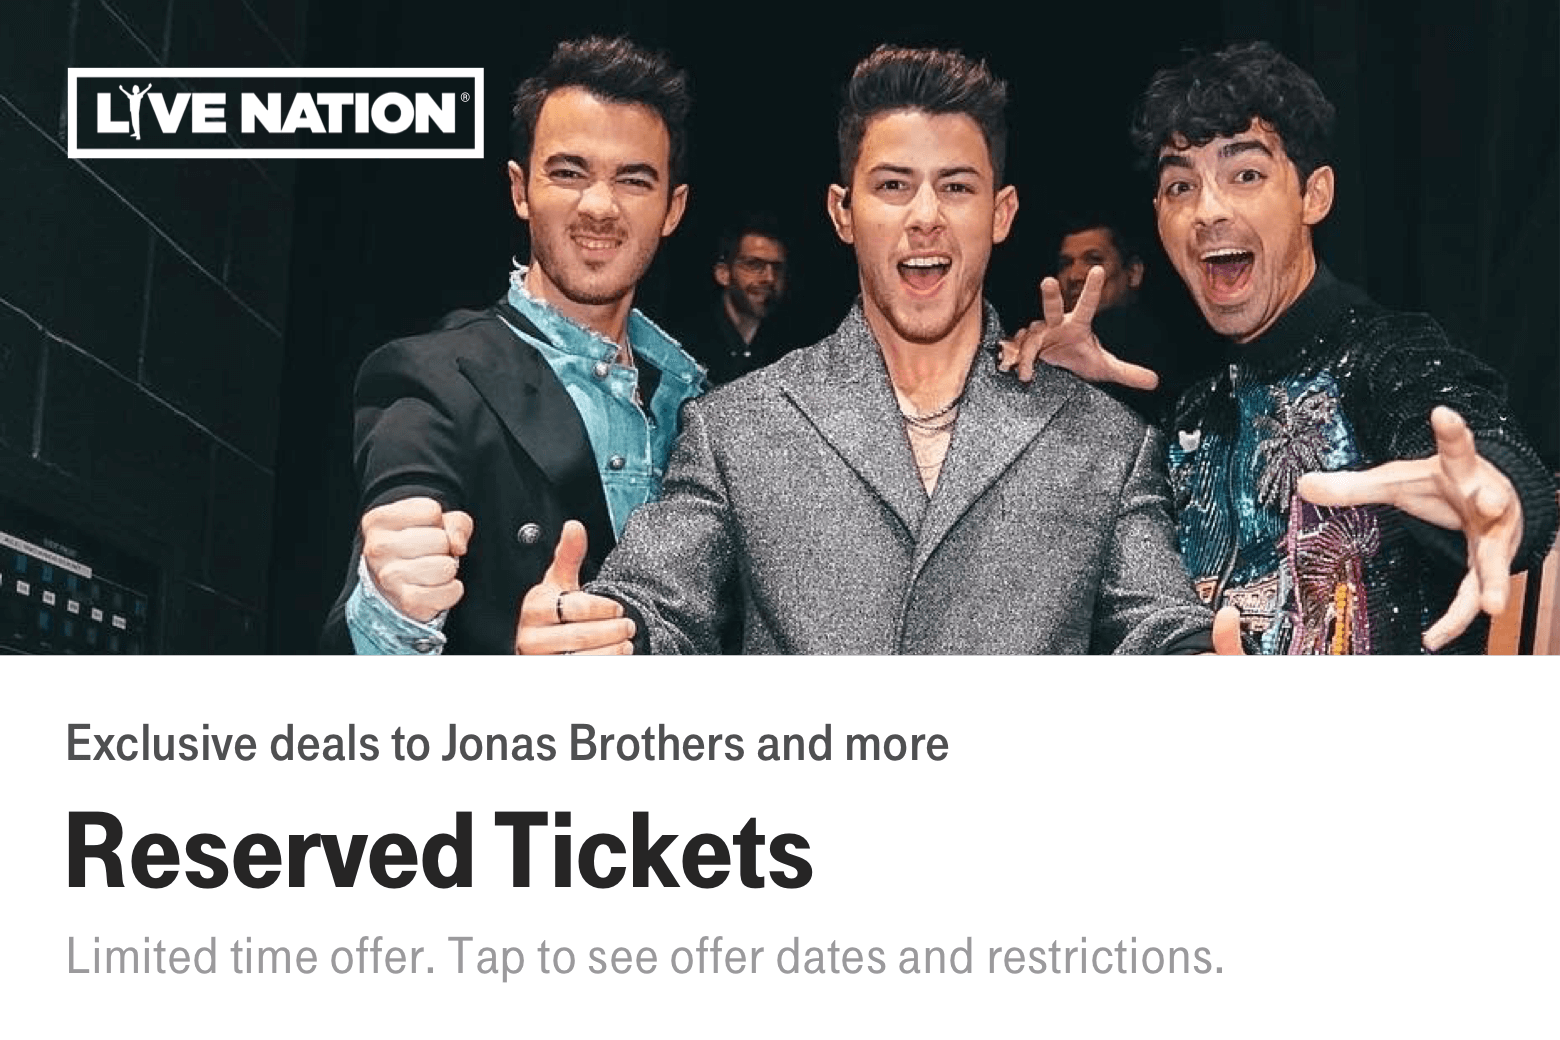 Live Nation. Exclusive deals to Jonas Brothers and more. Reserved Tickets. Limited time offer. Tap to see offer dates and restrictions.